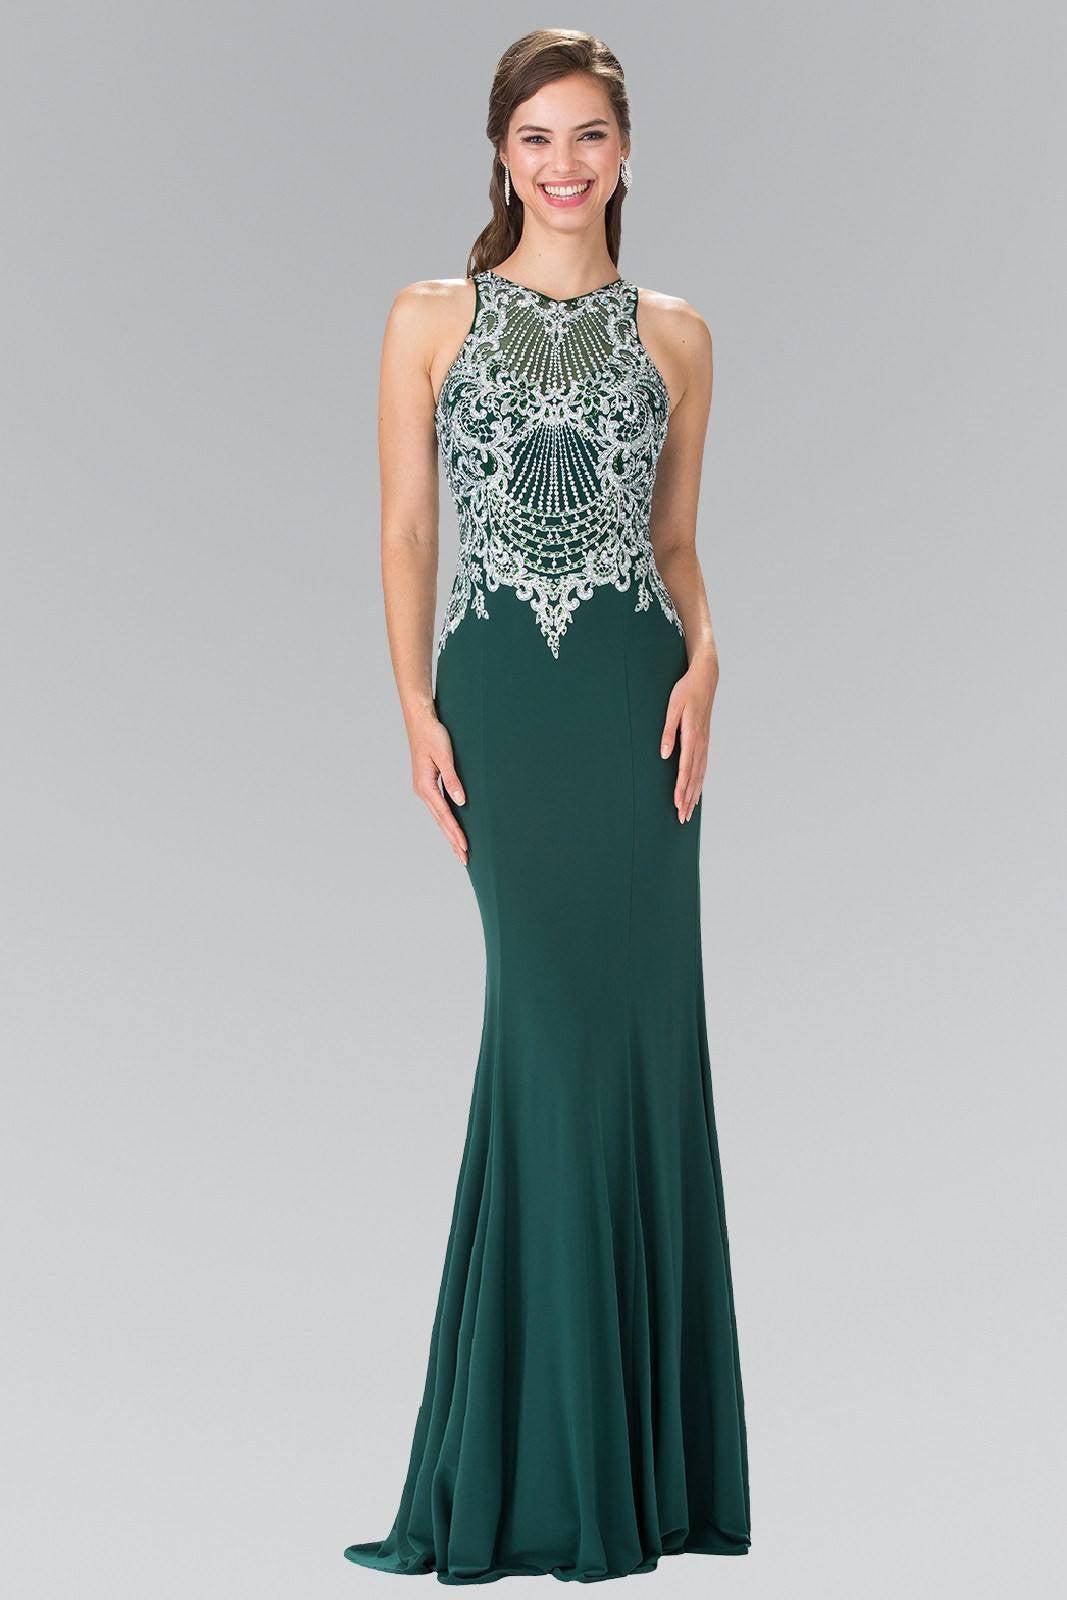 Trendy Formal Gowns